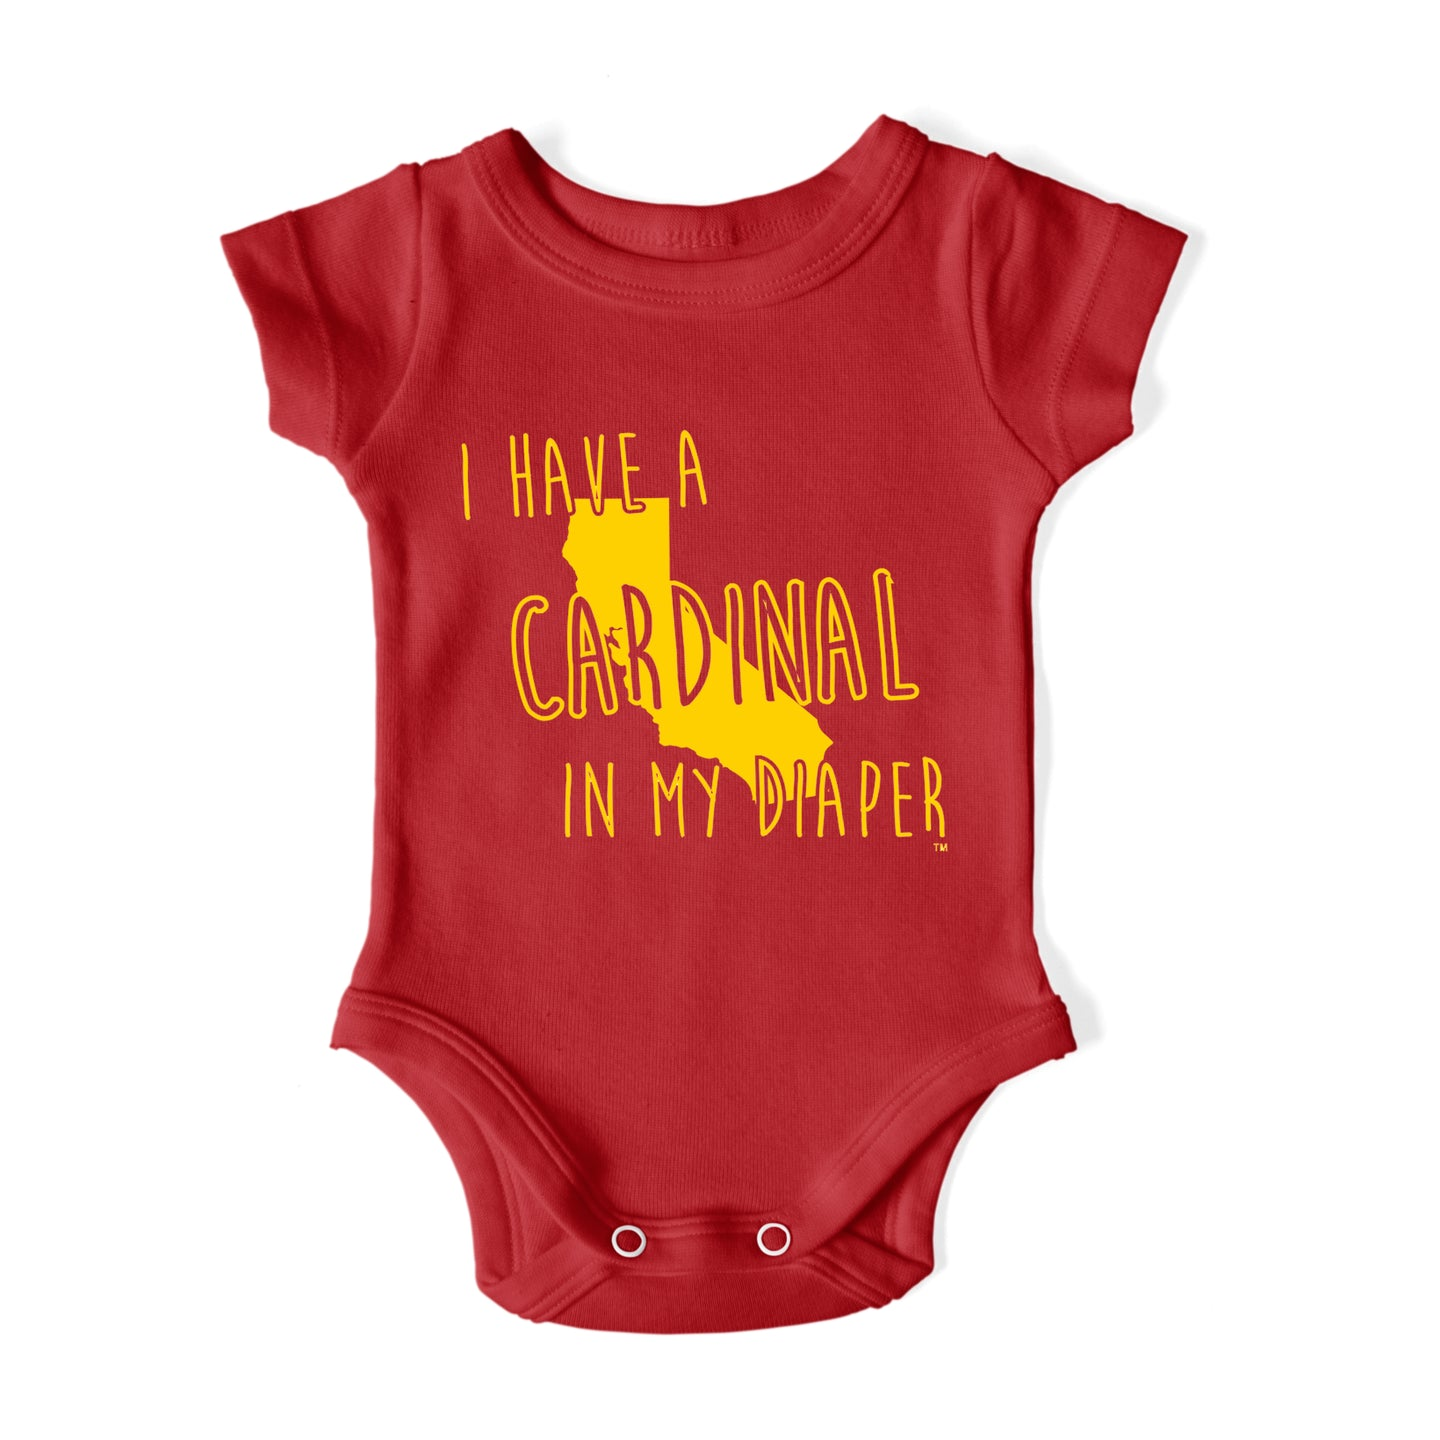 I HAVE A CARDINAL IN MY DIAPER Baby One Piece